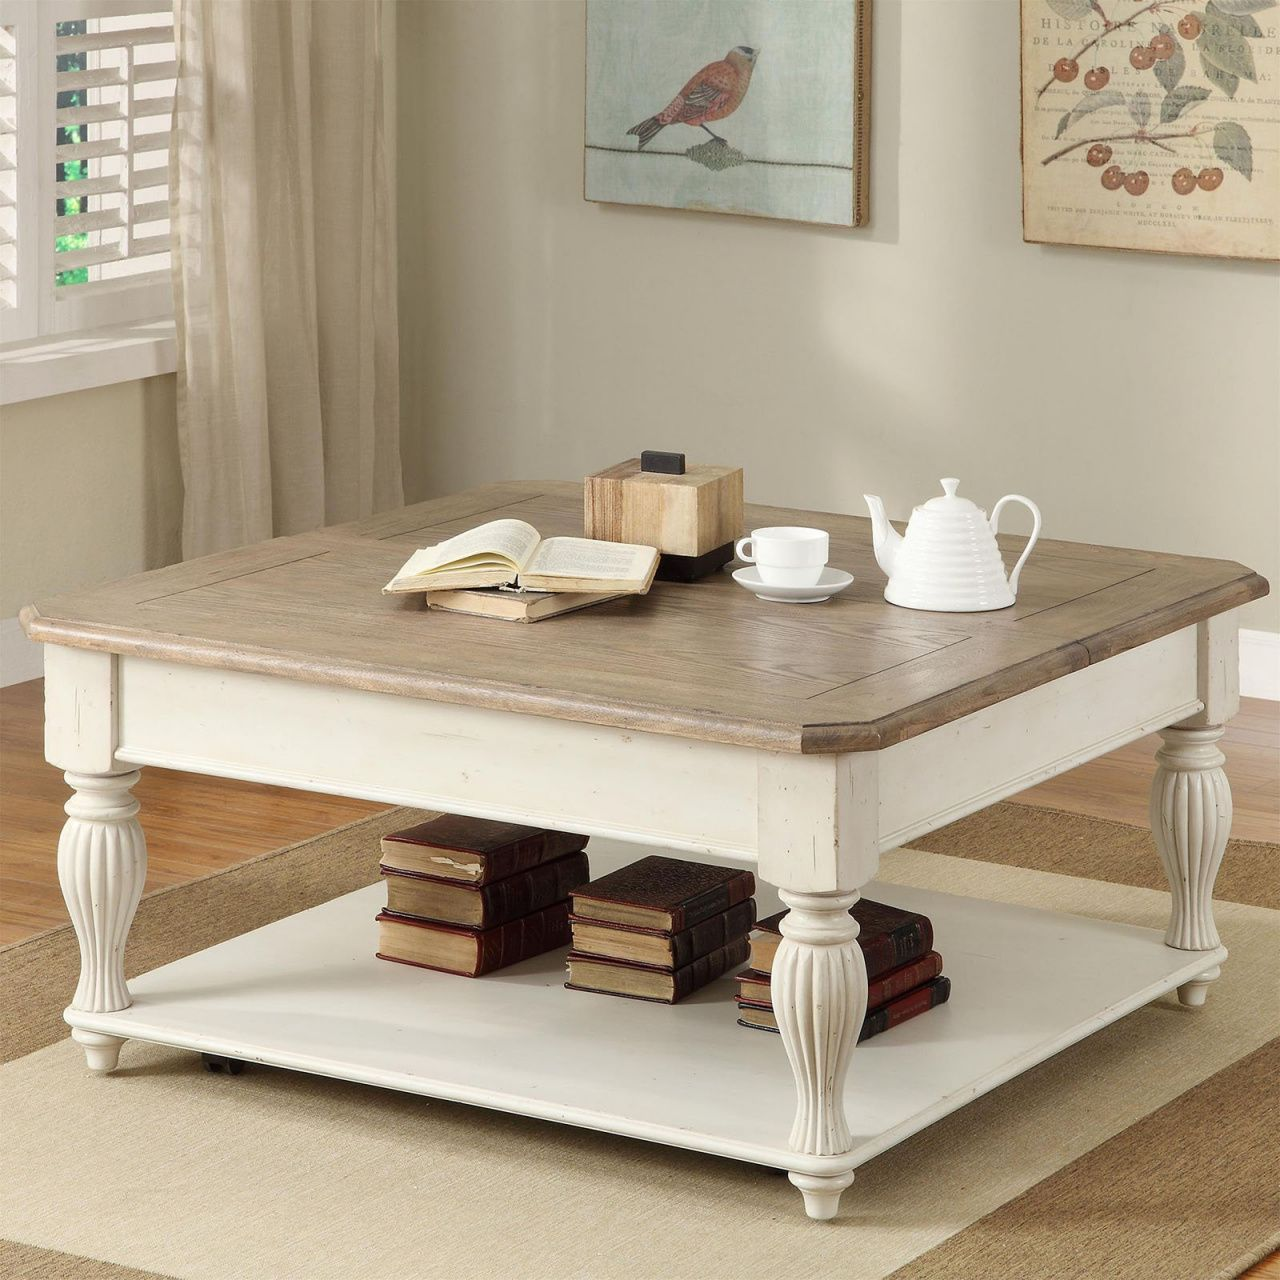 Attrayant Small White Wooden Table   Home Office Furniture Sets Check More At Http://